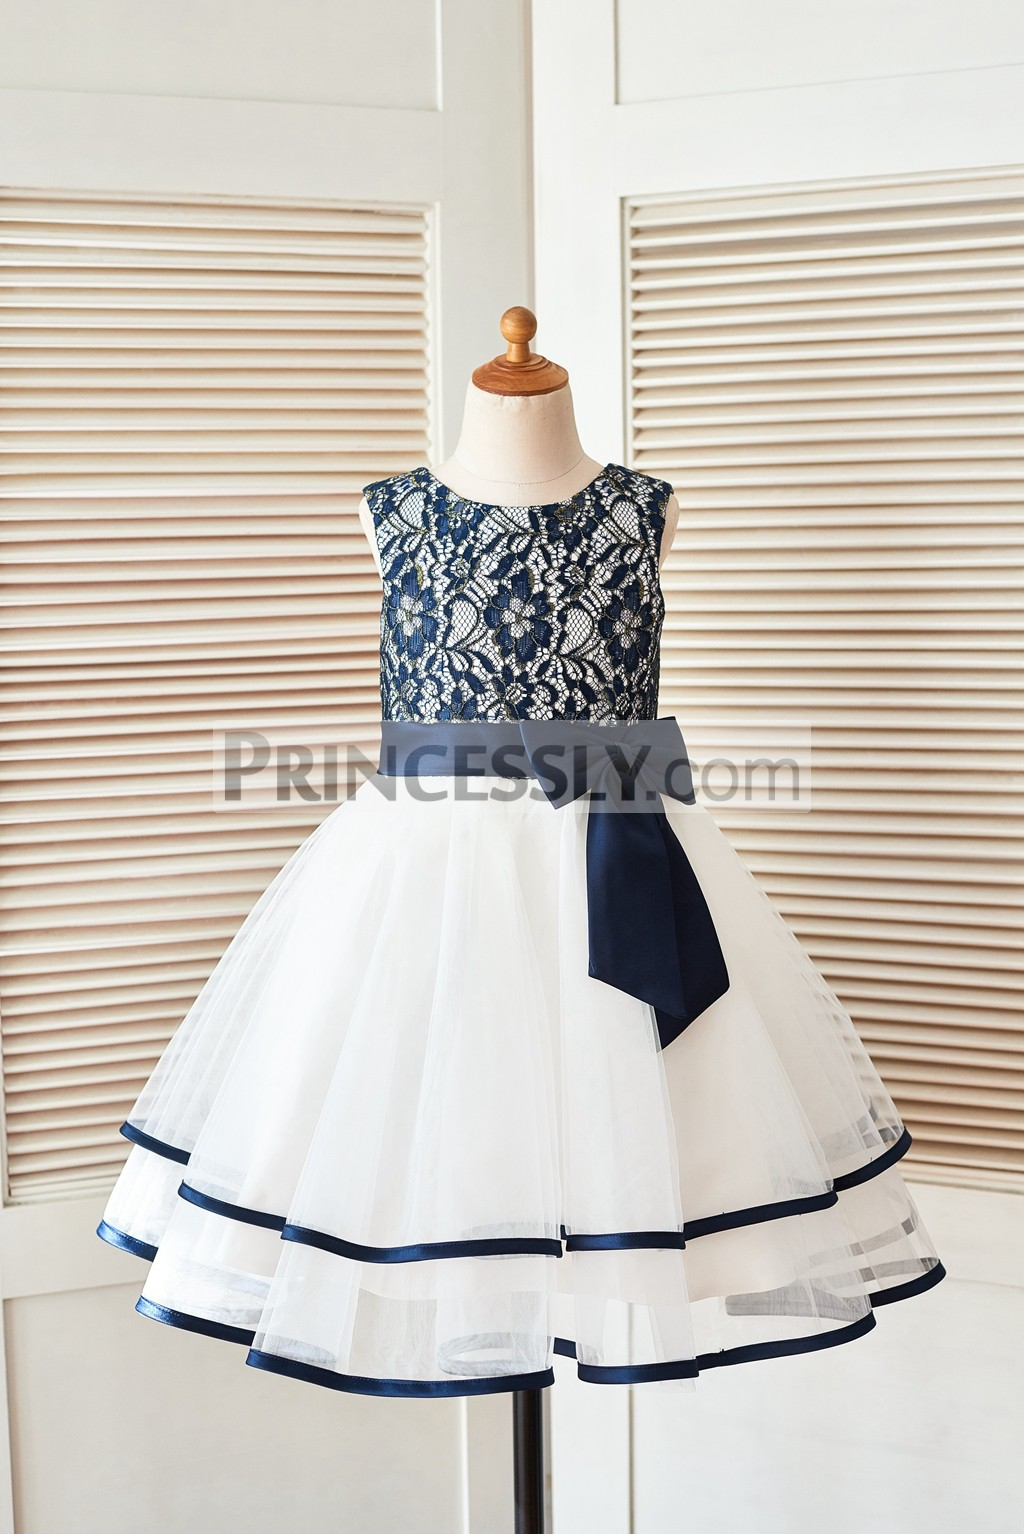 4e5177d6b Navy Blue Gold Lace Ivory Tulle Layered Flower Girl Dress with Bow ...